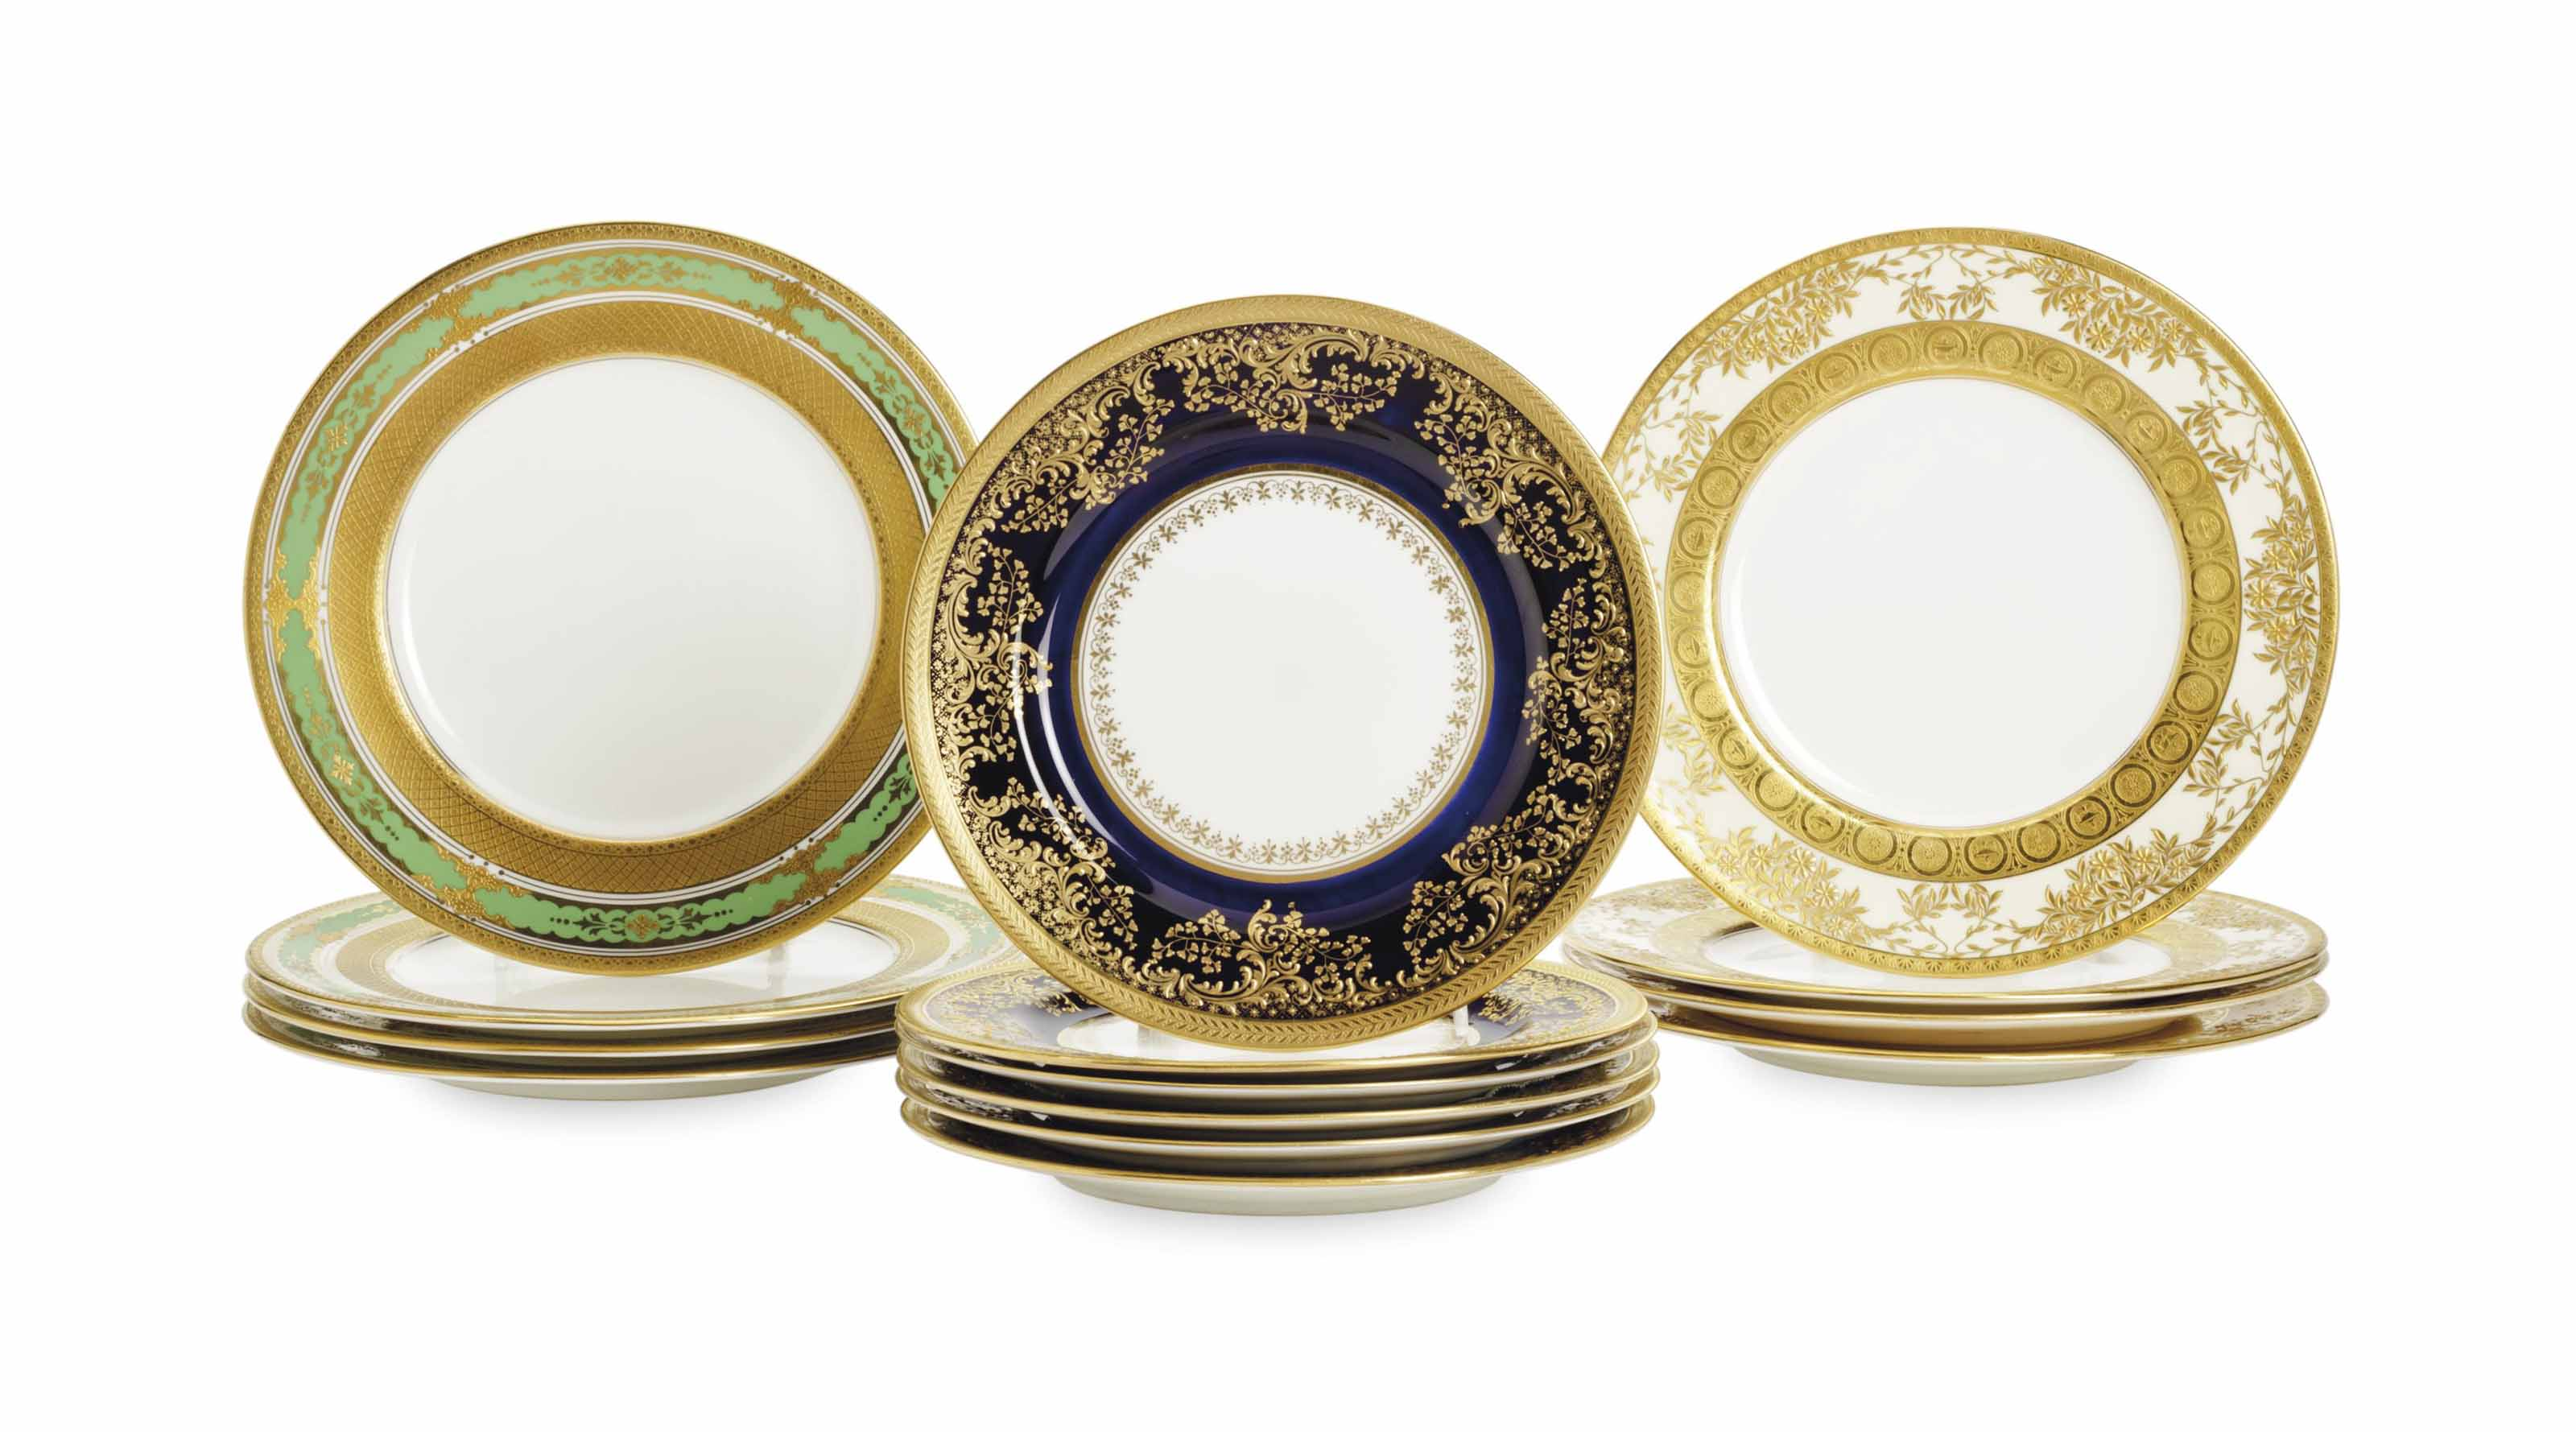 THREE SETS OF ENGLISH GILT DECORATED PLATES,